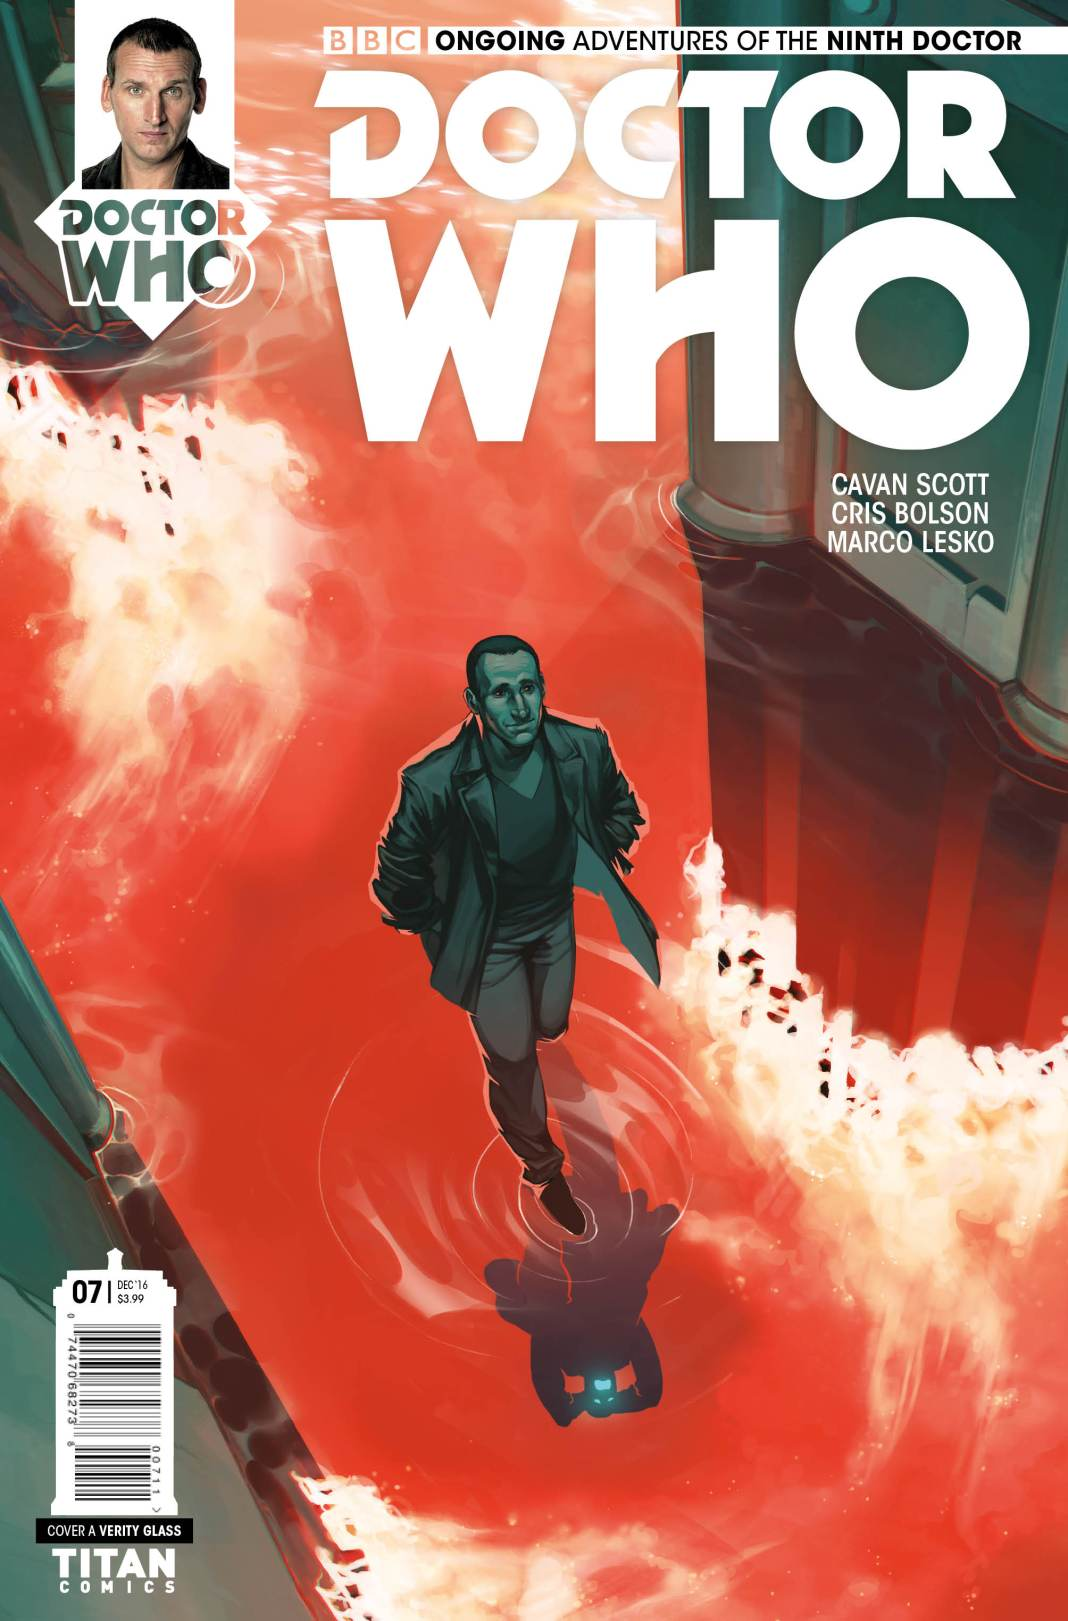 TITAN COMICS - NINTH DOCTOR #7 COVER A BY VERITY GLASS